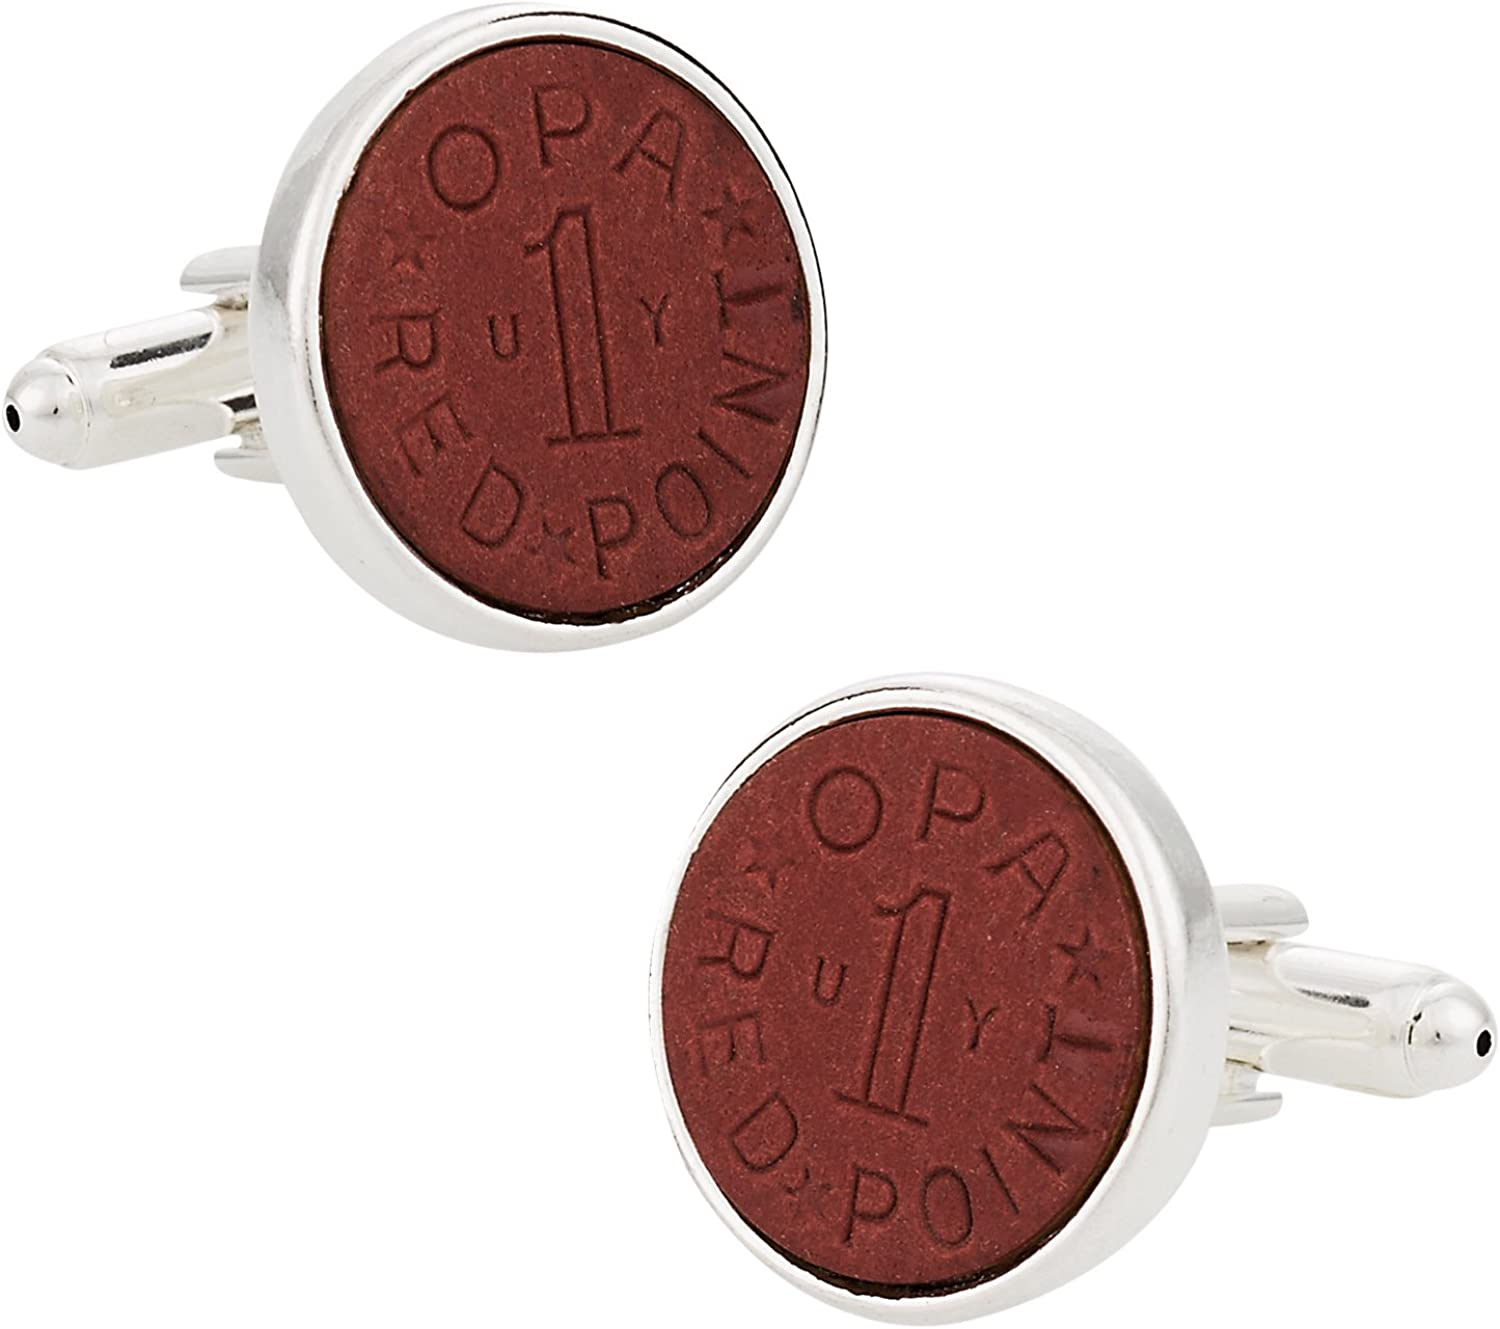 Cuff-Daddy OPA Red Point WWII Ration Cufflinks Clad in Sterling Silver with Presentation Box